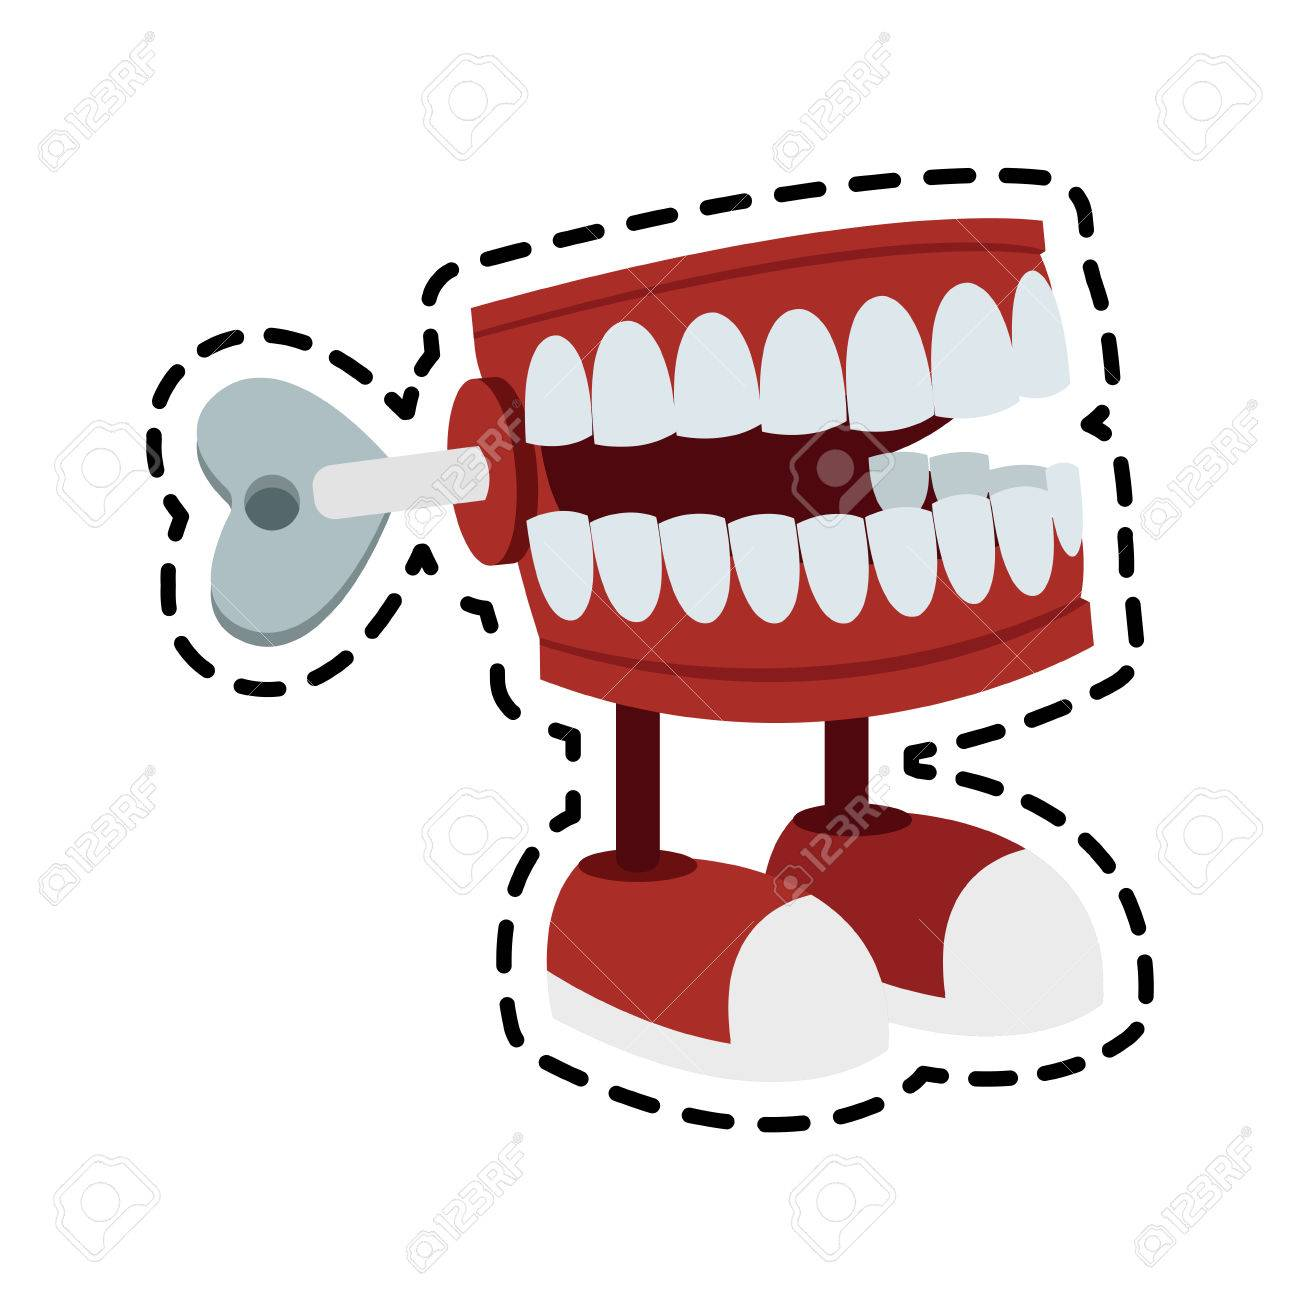 Chattering teeth wind up toy icon image » Clipart Station.